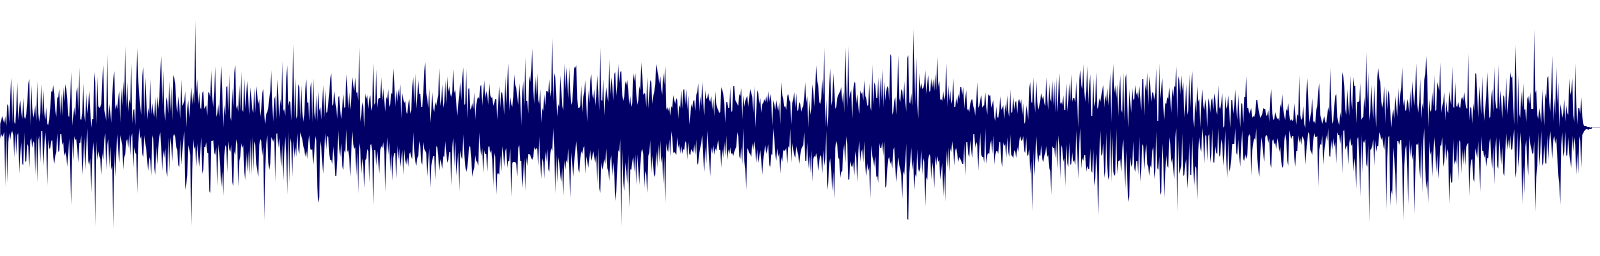 waveform of track #131967